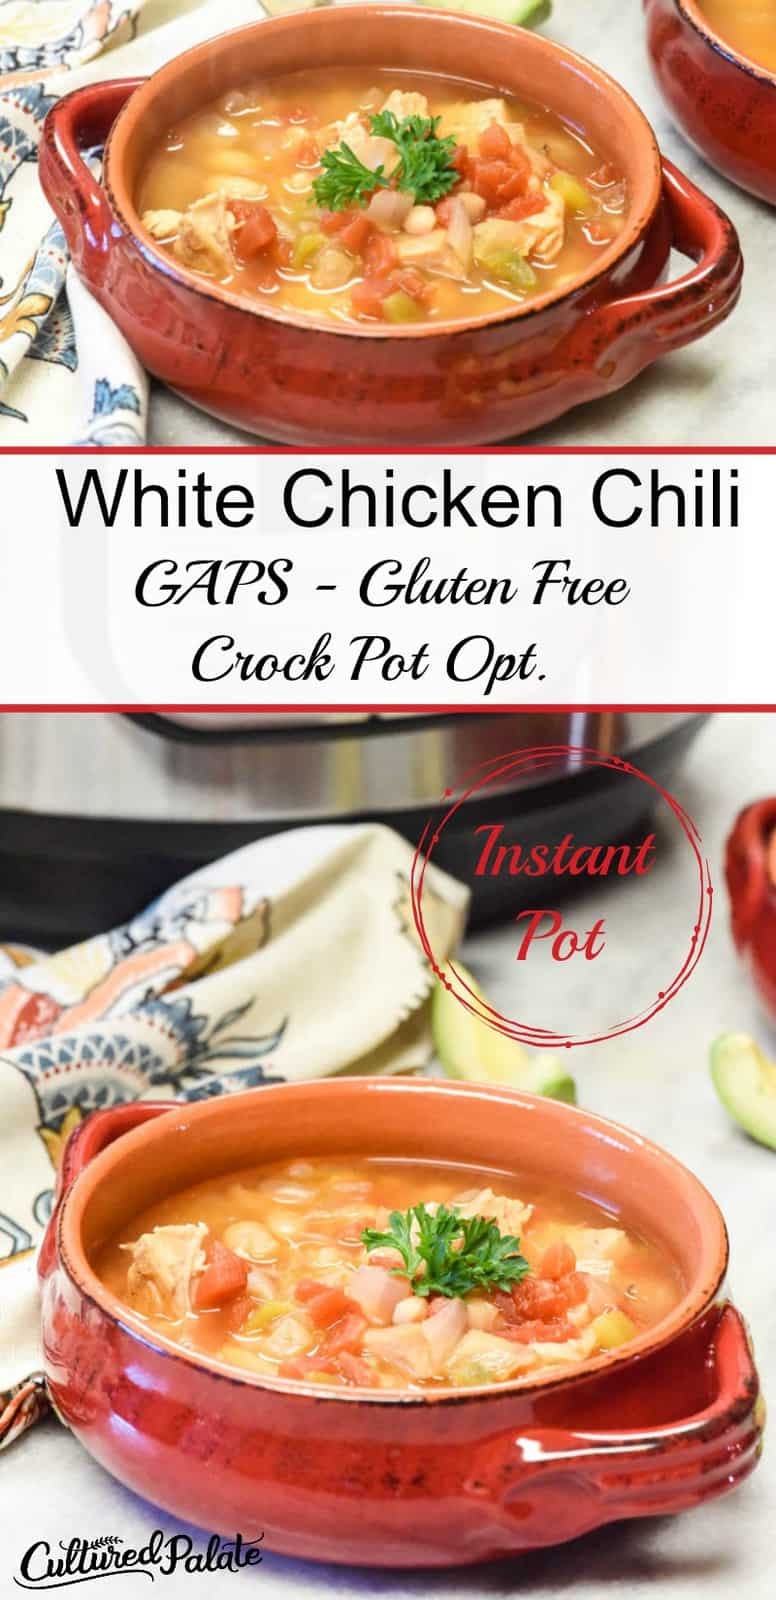 collage of two images of instant pot white chicken chili with text overlay